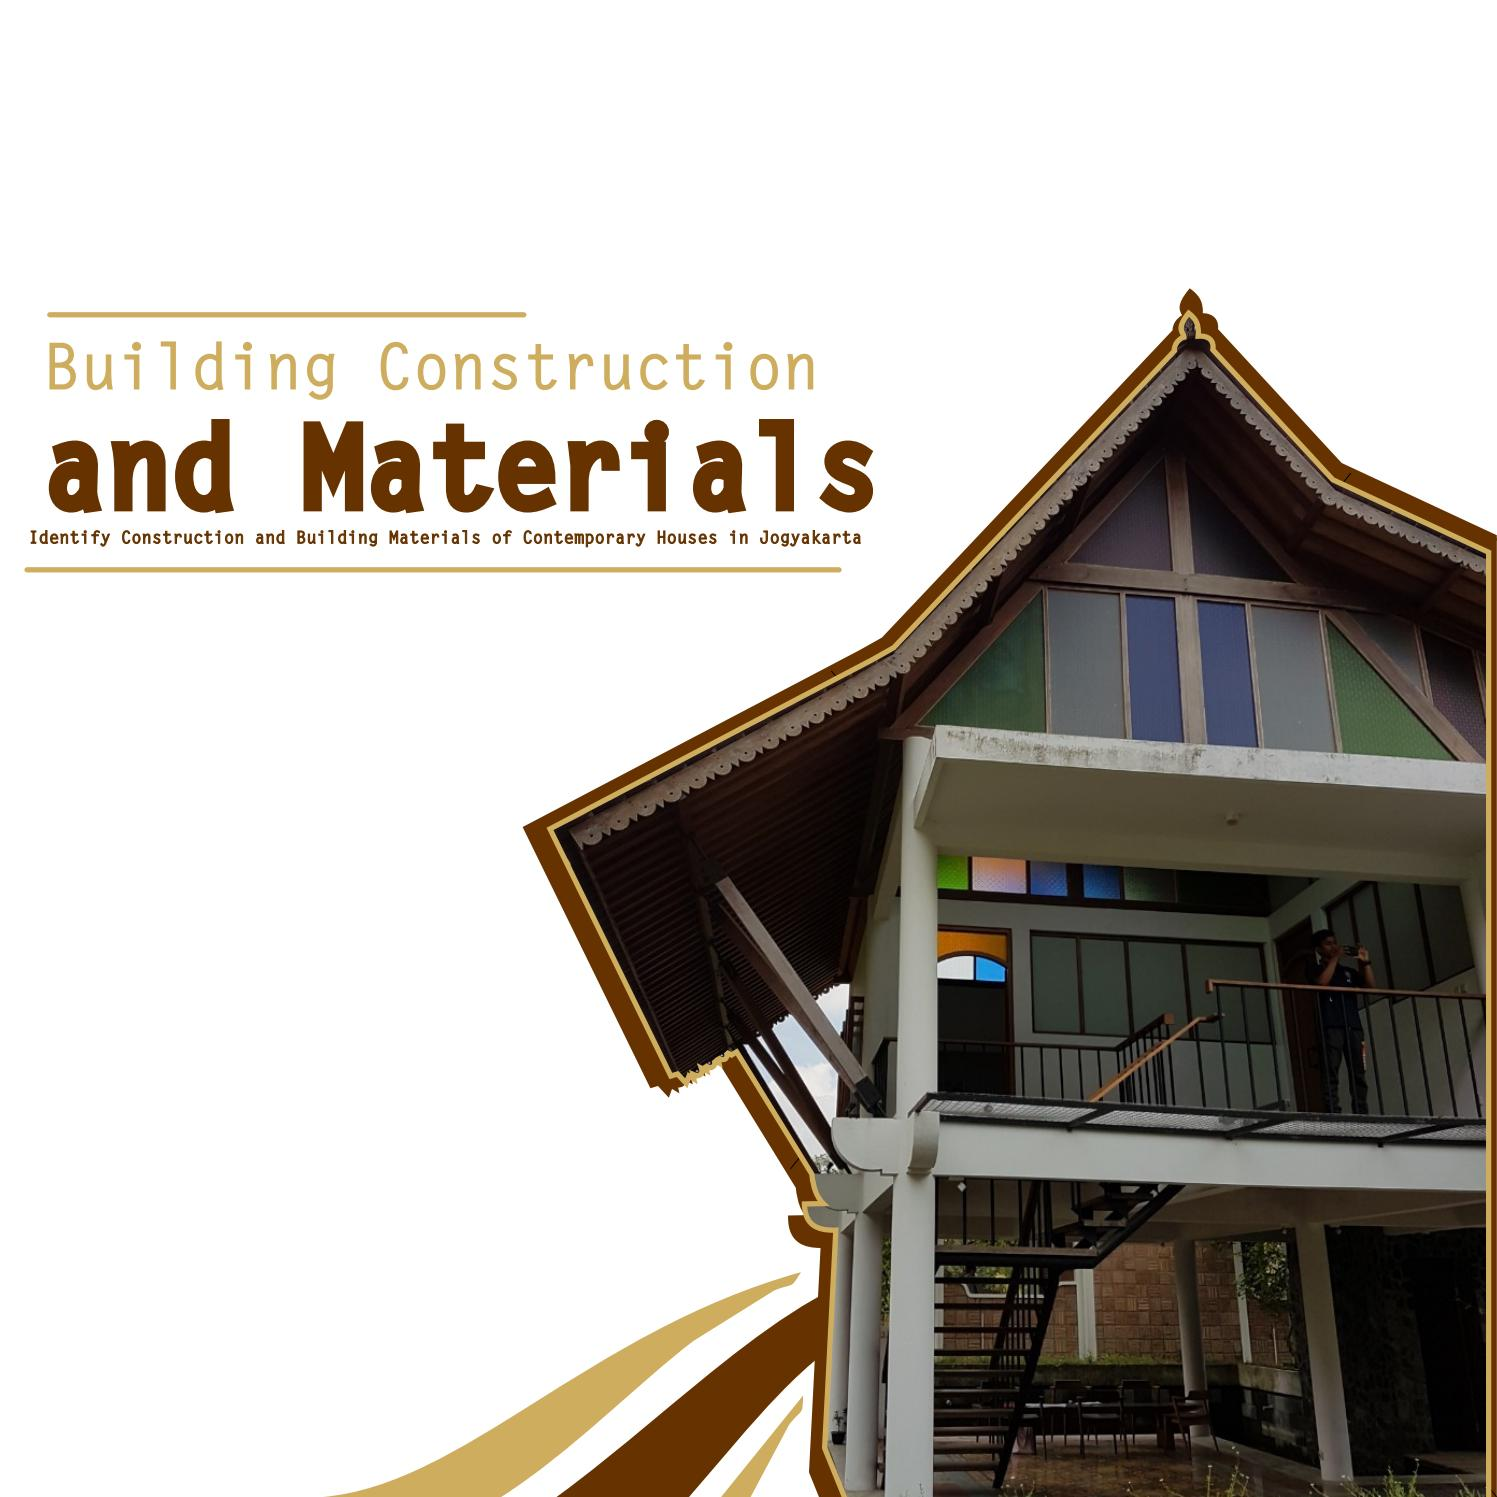 Potongan Rumah Joglo Building Construction And Materials By Muhammad Faiq Fahrurrozi